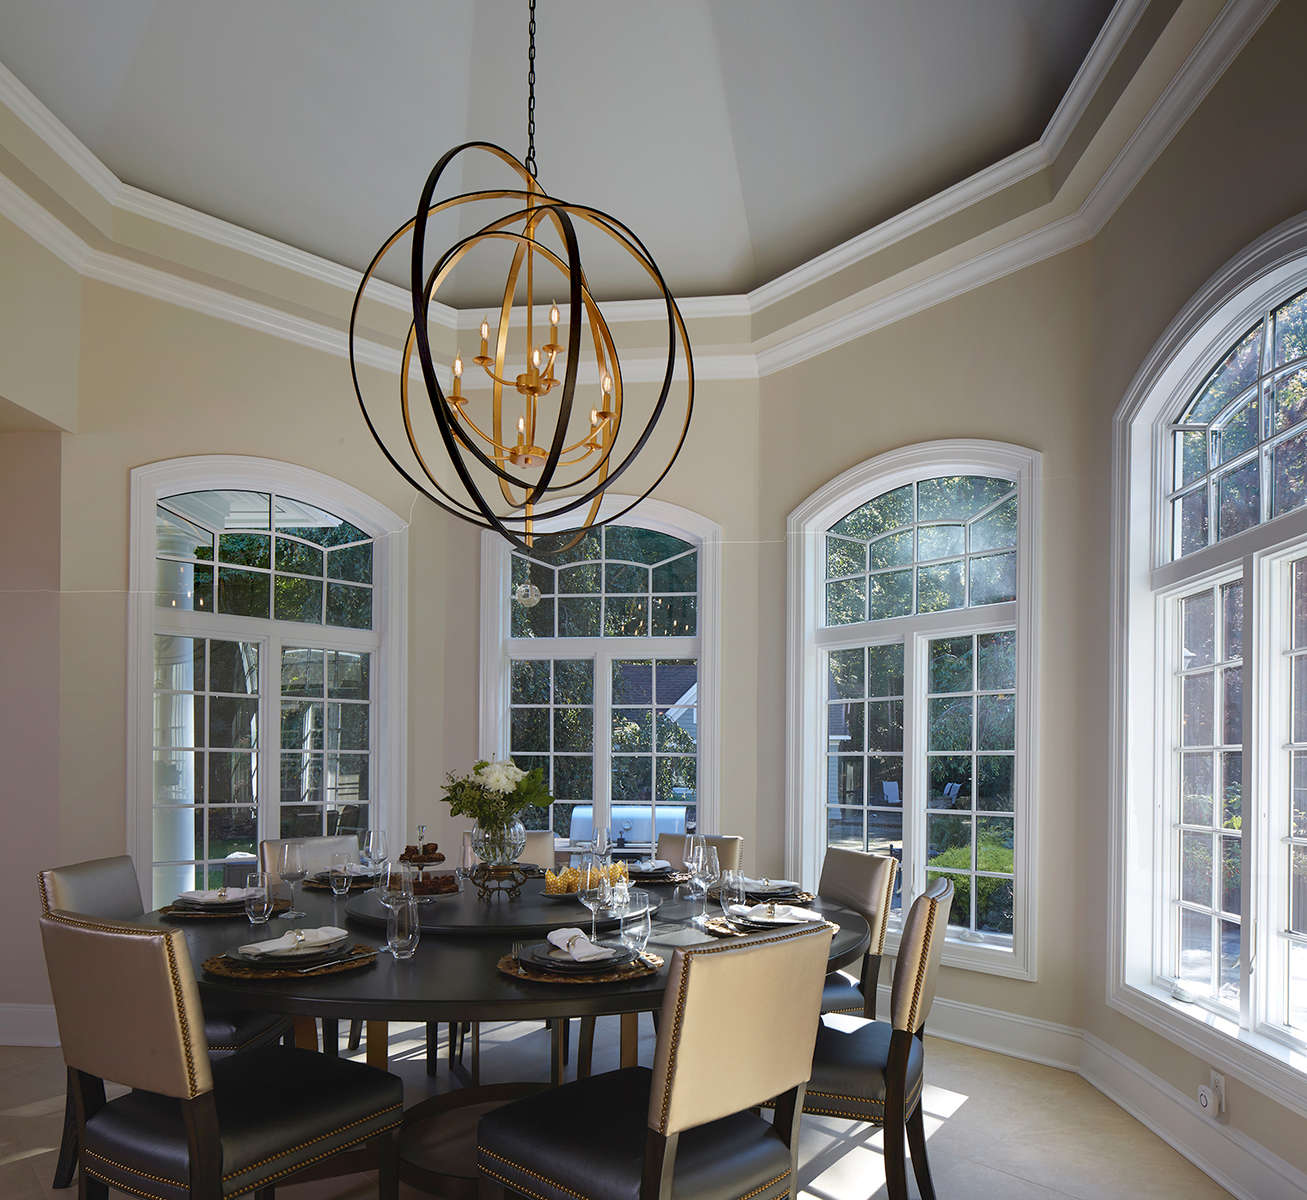 Belle Terre kitchen renovation with eat in dining area